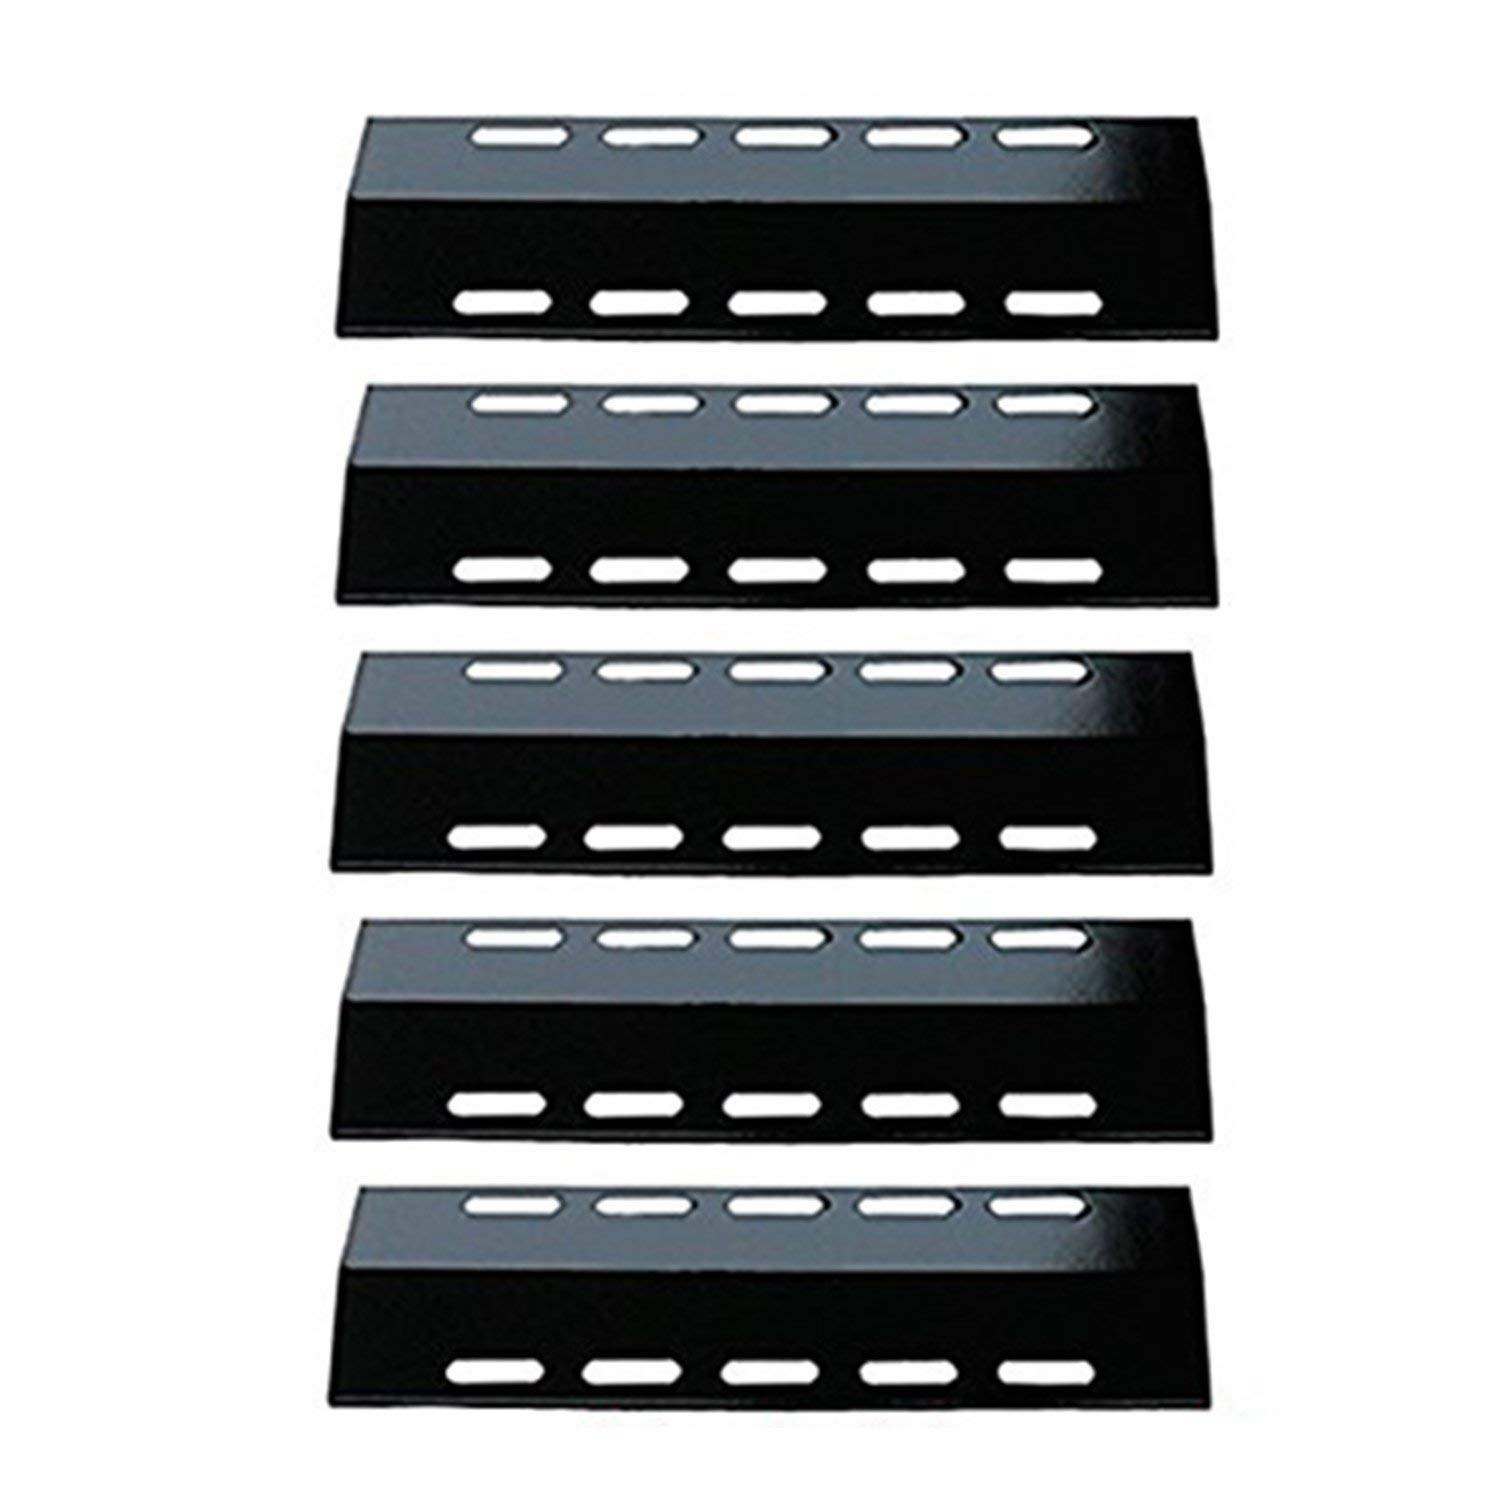 Zljiont 30500701/30500097 (5-pack) Porcelain Steel Heat Plate Replacement for Select Ducane 5 Burner Gas Grill Models, Fits Ducane 30400042, 30400043, 30400044, 30400045, 30458501 30851201, 30851301. S5200, S5400 and Weber 300043 grills(16 7/8 x 5 1/8)